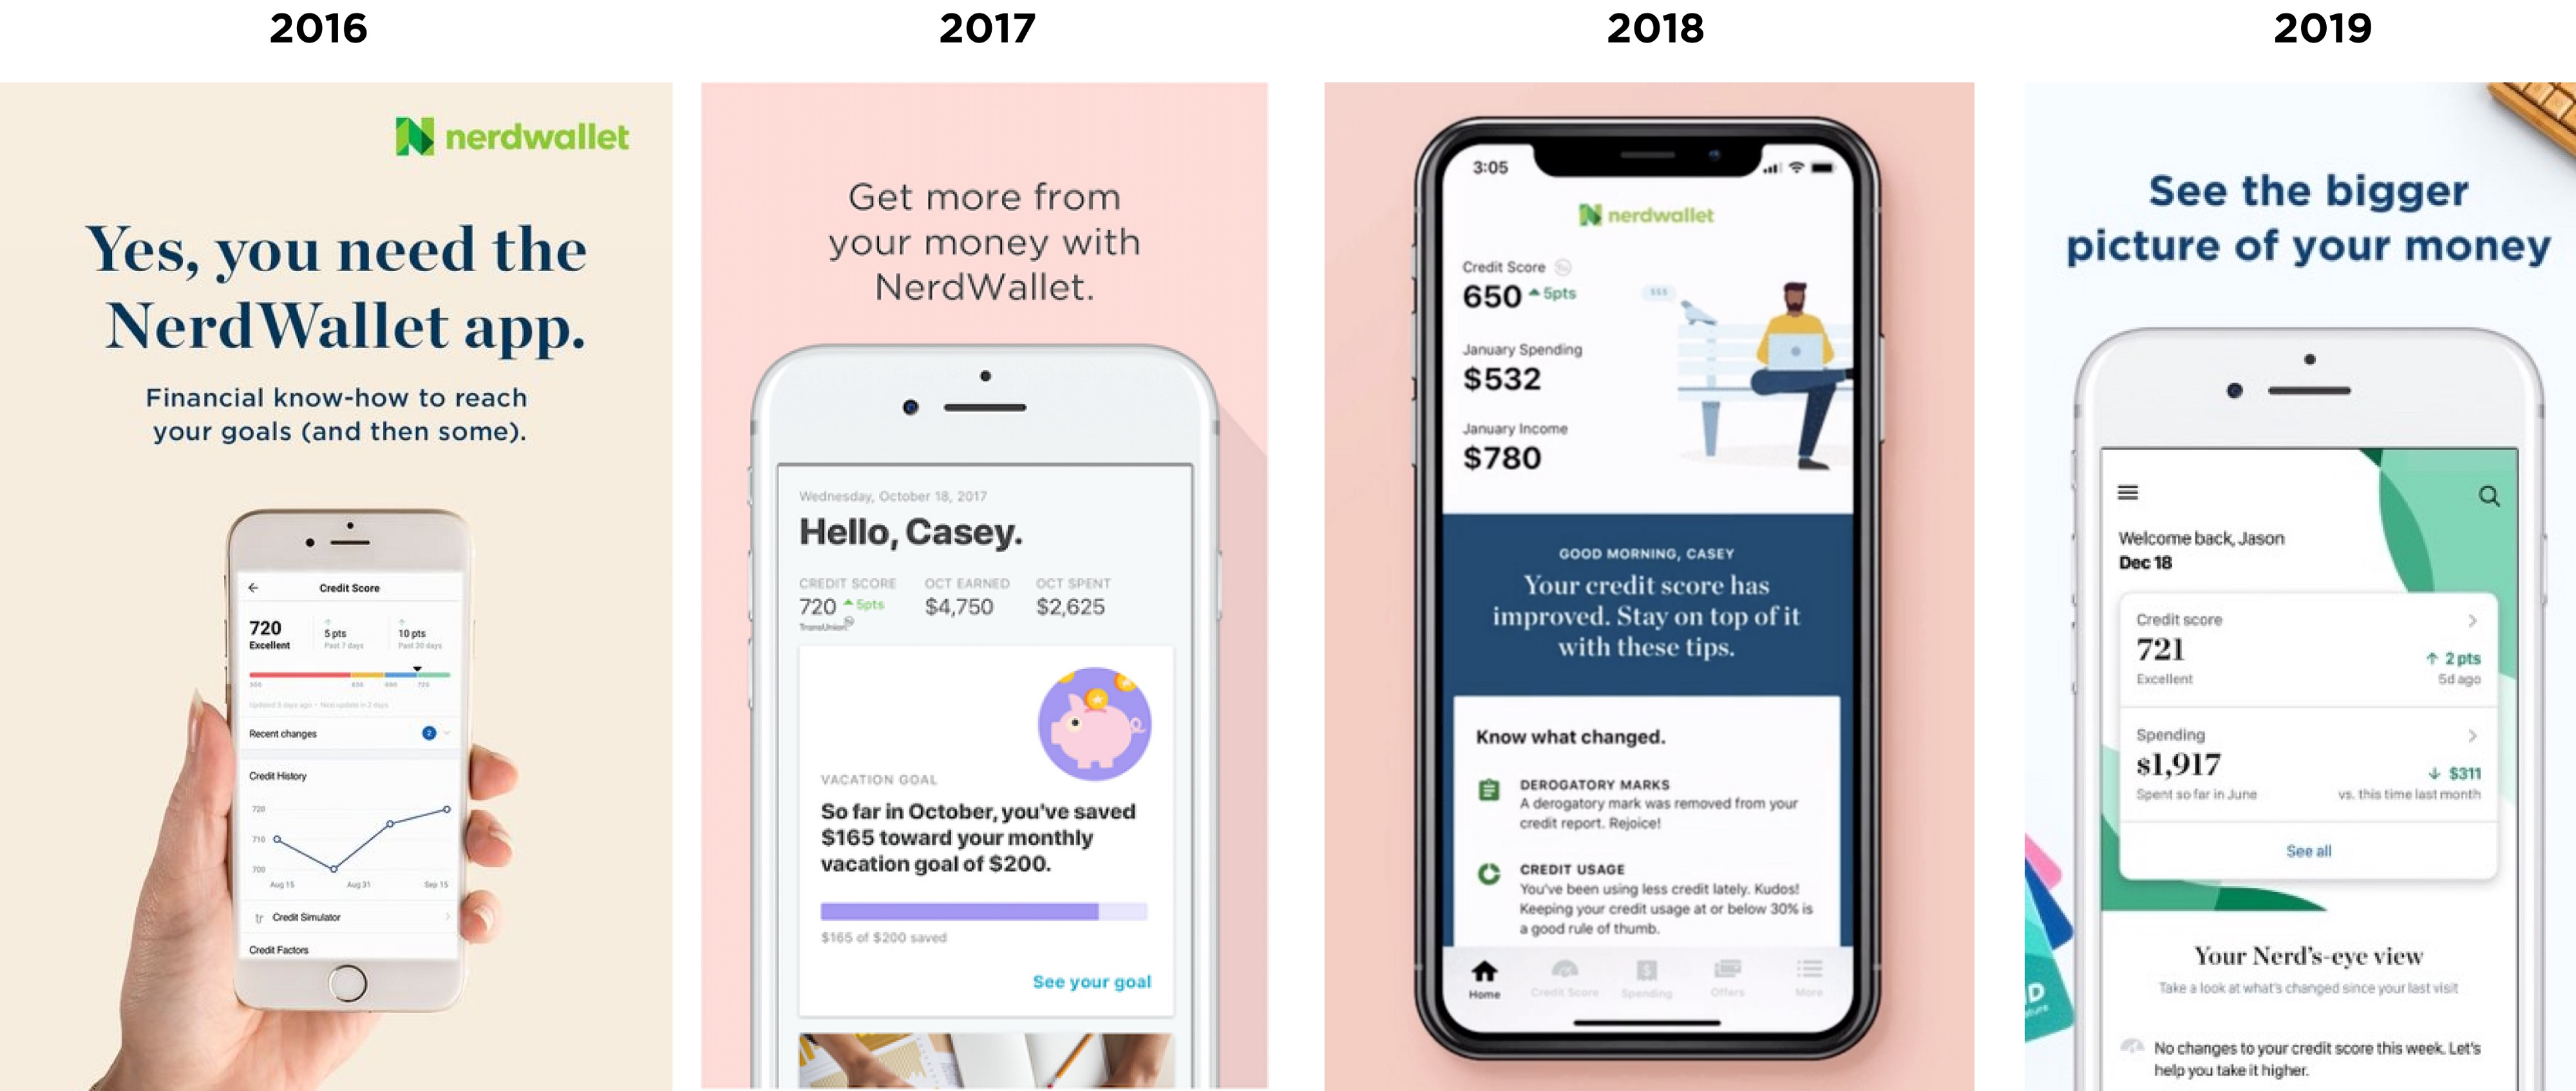 Four screenshots of the NerdWallet app's home screen that show what it looked like in 206, 2017, 2018, and 2019. In the first one, only credit score is featured. As the years progress, the screenshots show more information about the user's personal finances.